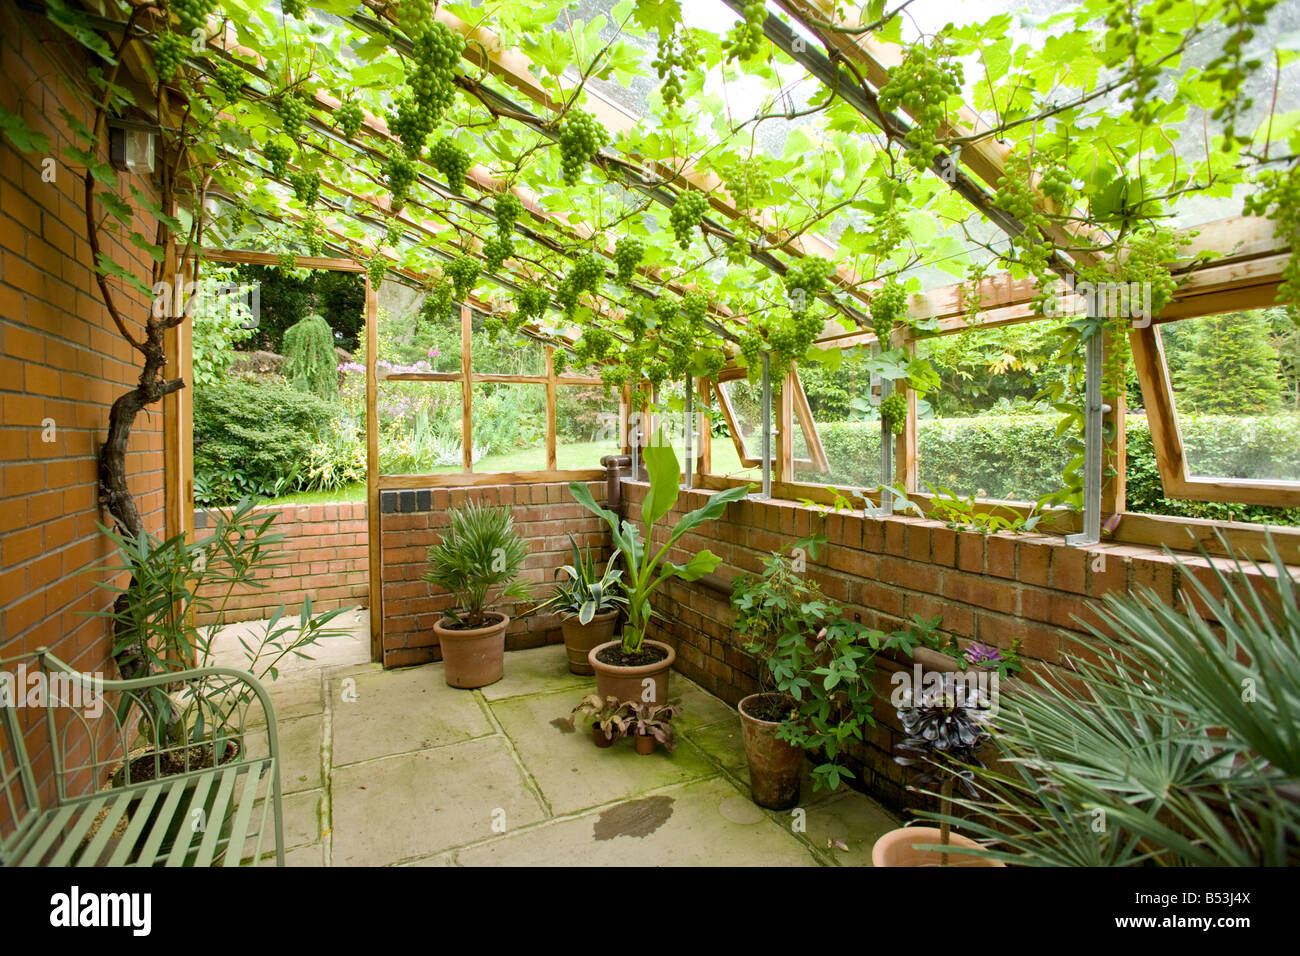 how to grow a grape vine in a greenhouse